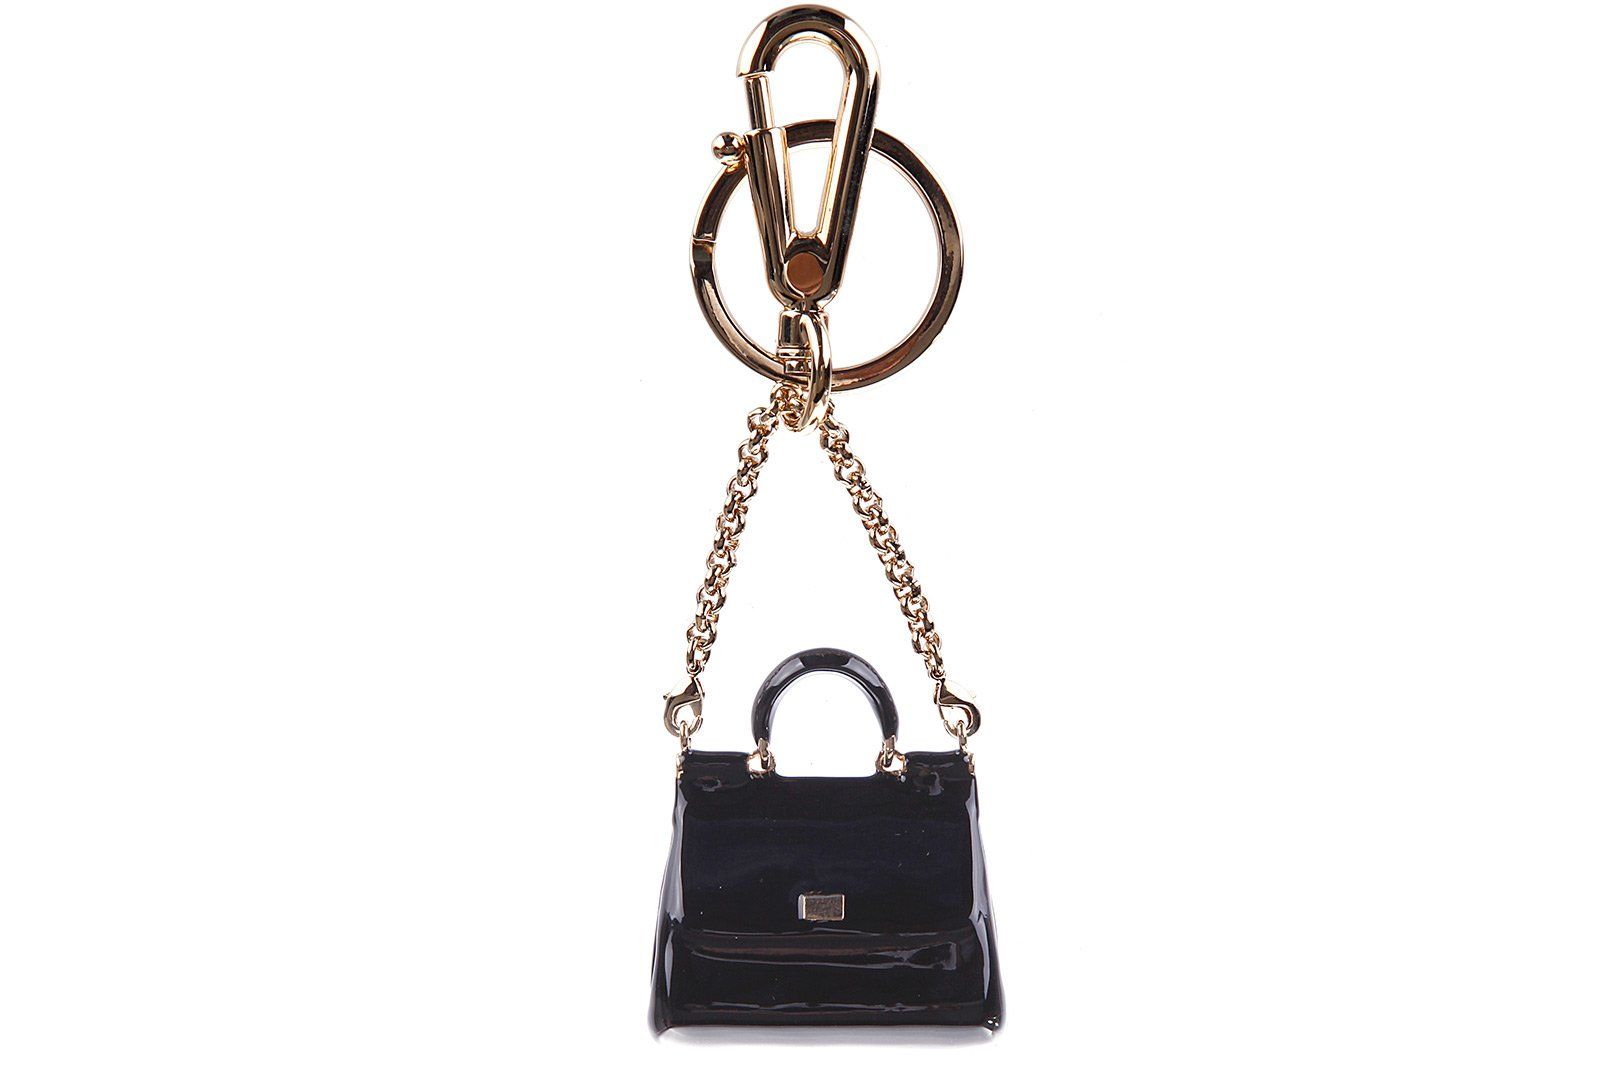 Dolce&Gabbana women's steel keychain key holder black